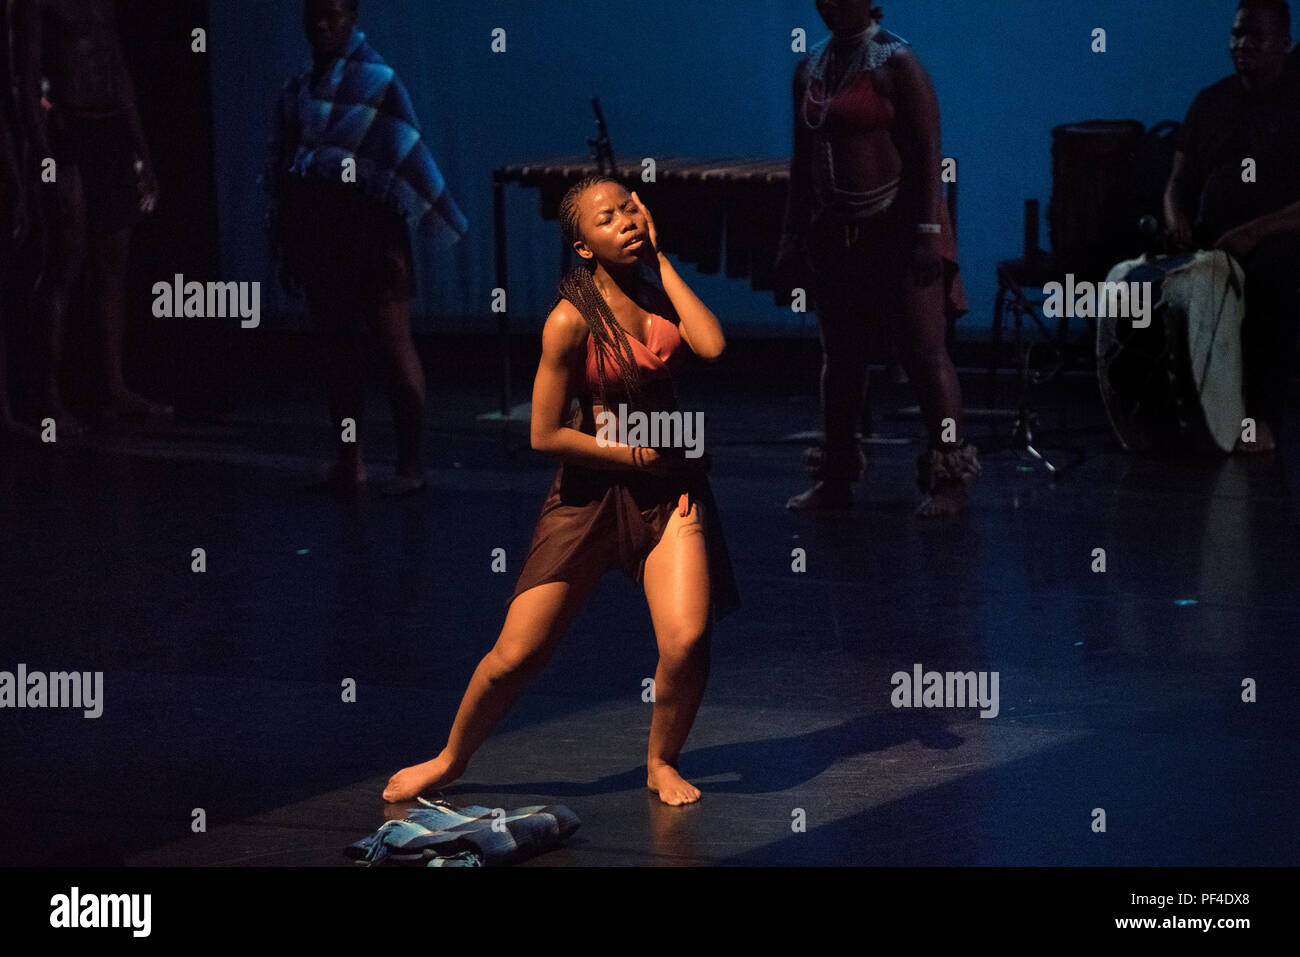 """The Mophato Dance Theater from Botswana performed """"Borwa: People of the South"""" at the Battery Dance Festival in Manhattan. - Stock Image"""